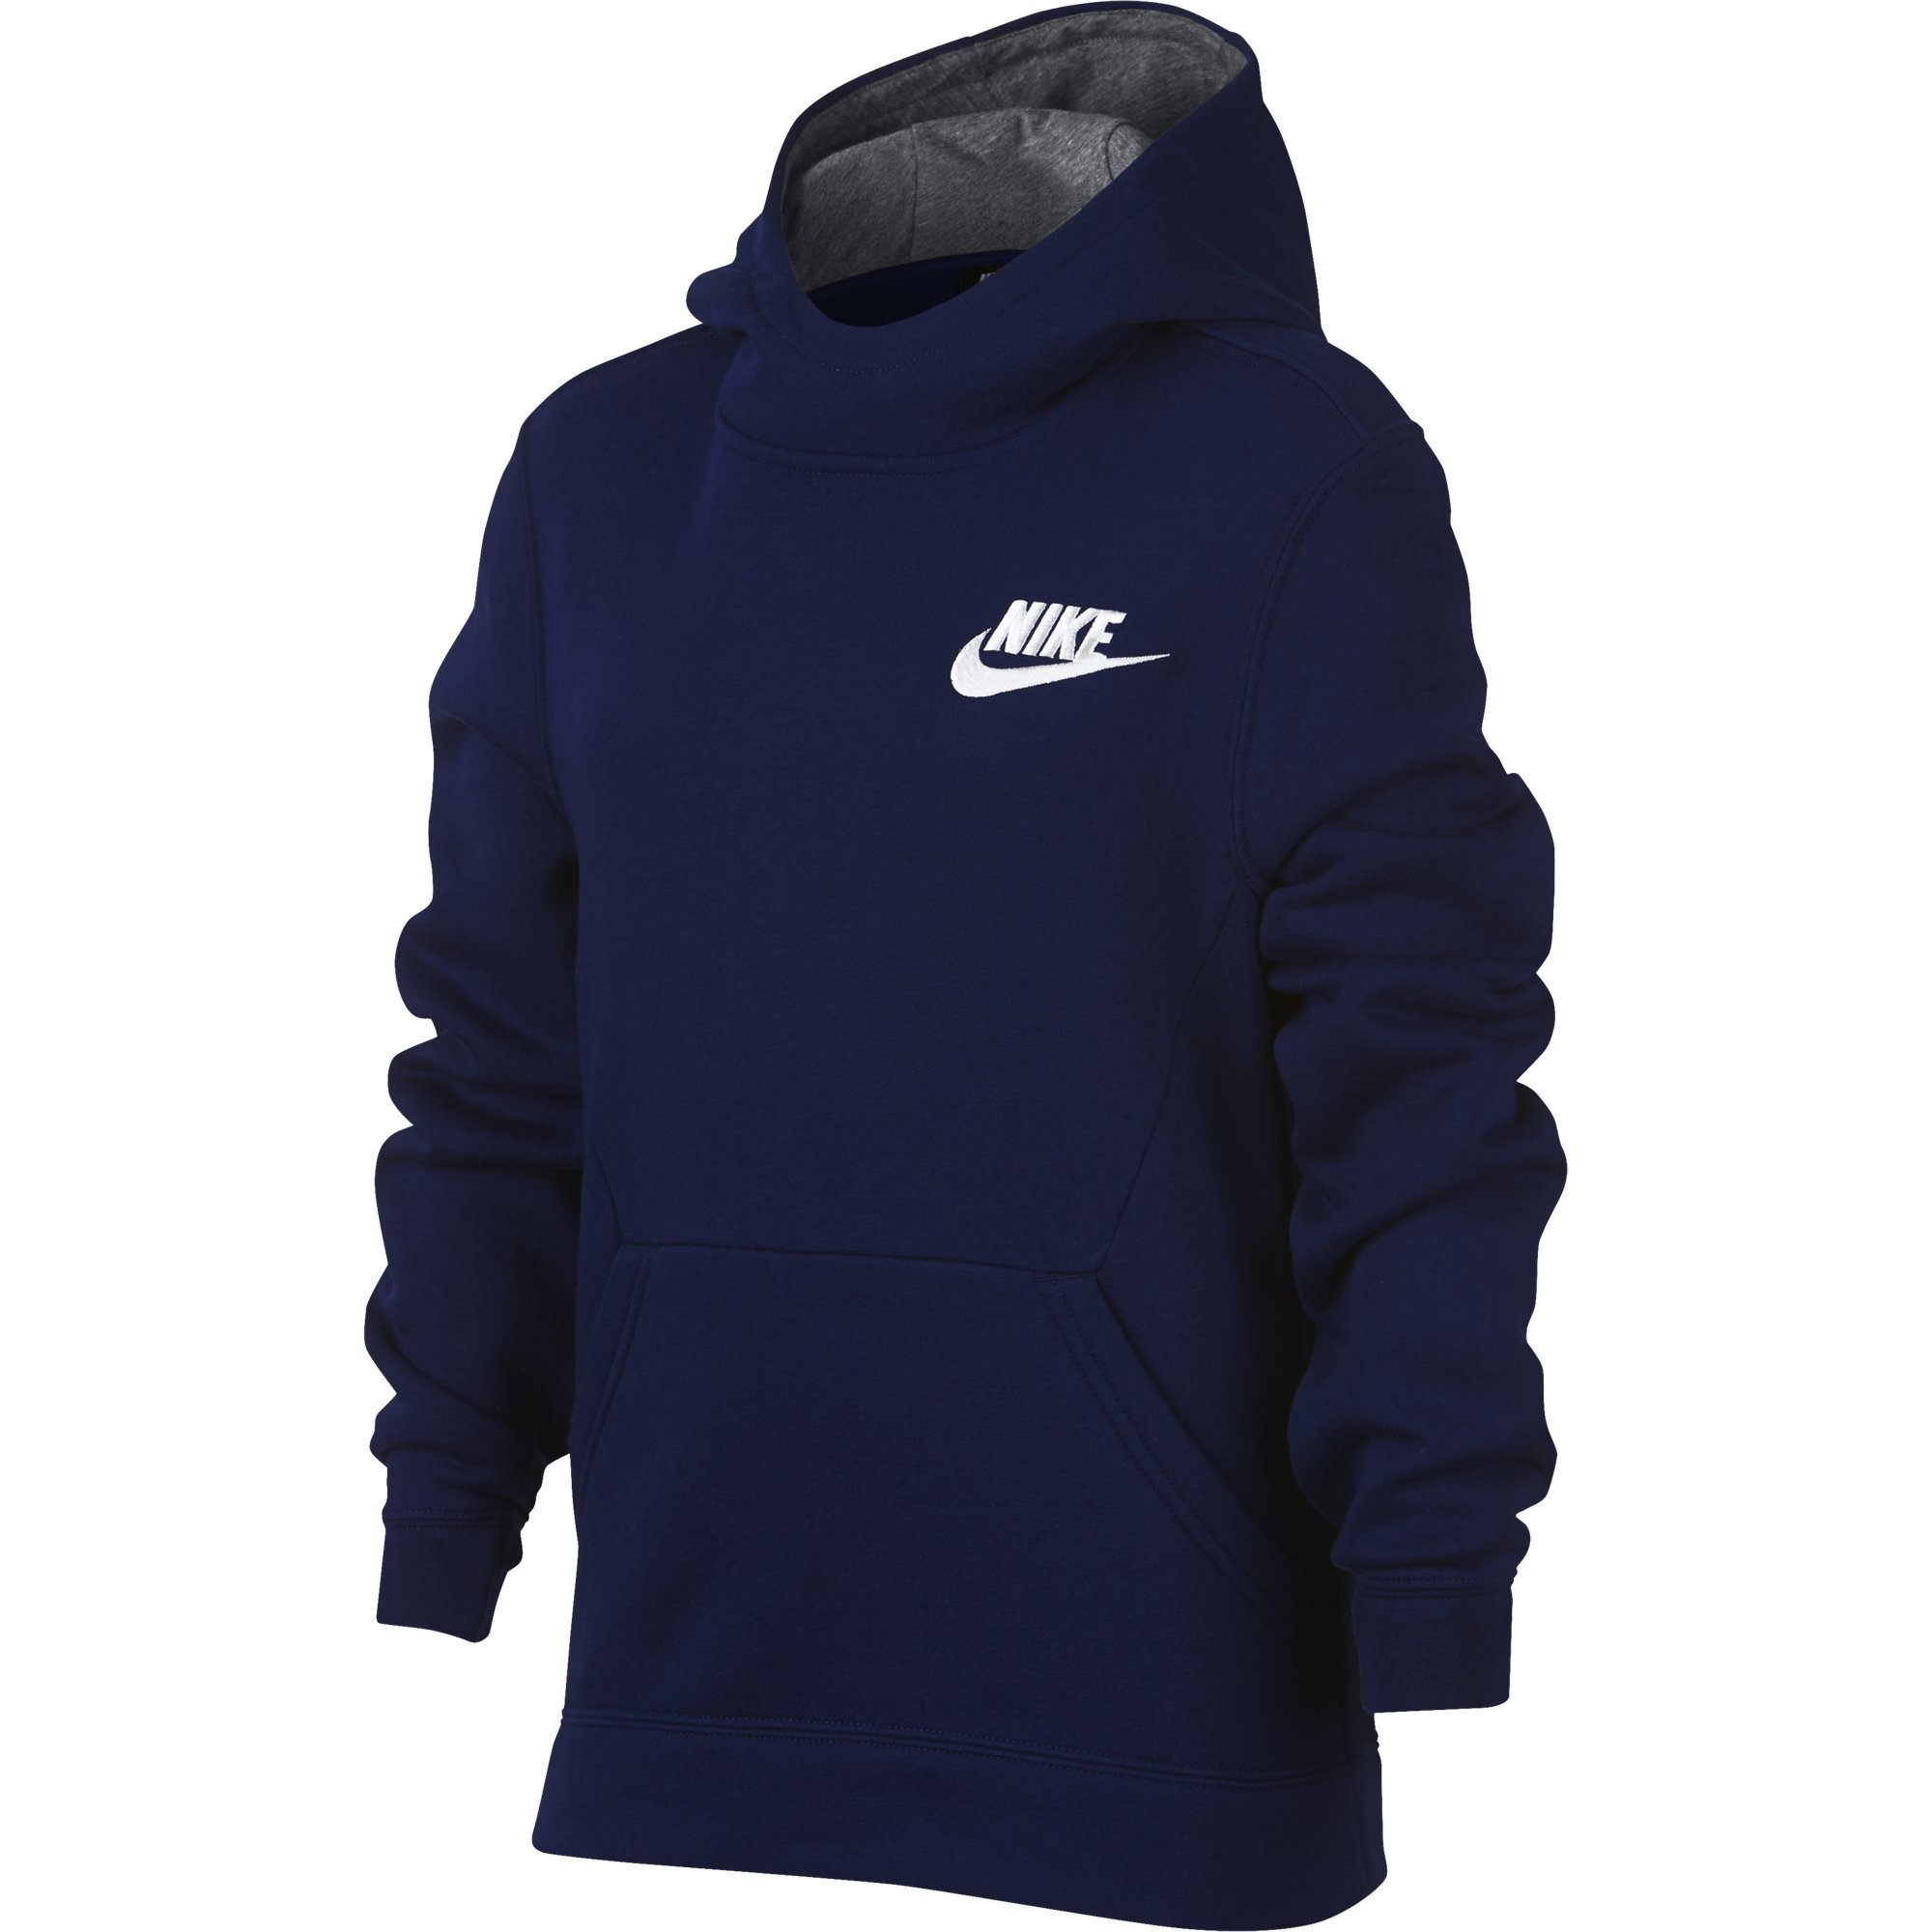 NIKE Sportswear Boys' Club Pullover Hoodie, Blue Void/Carbon Heather/White, Large